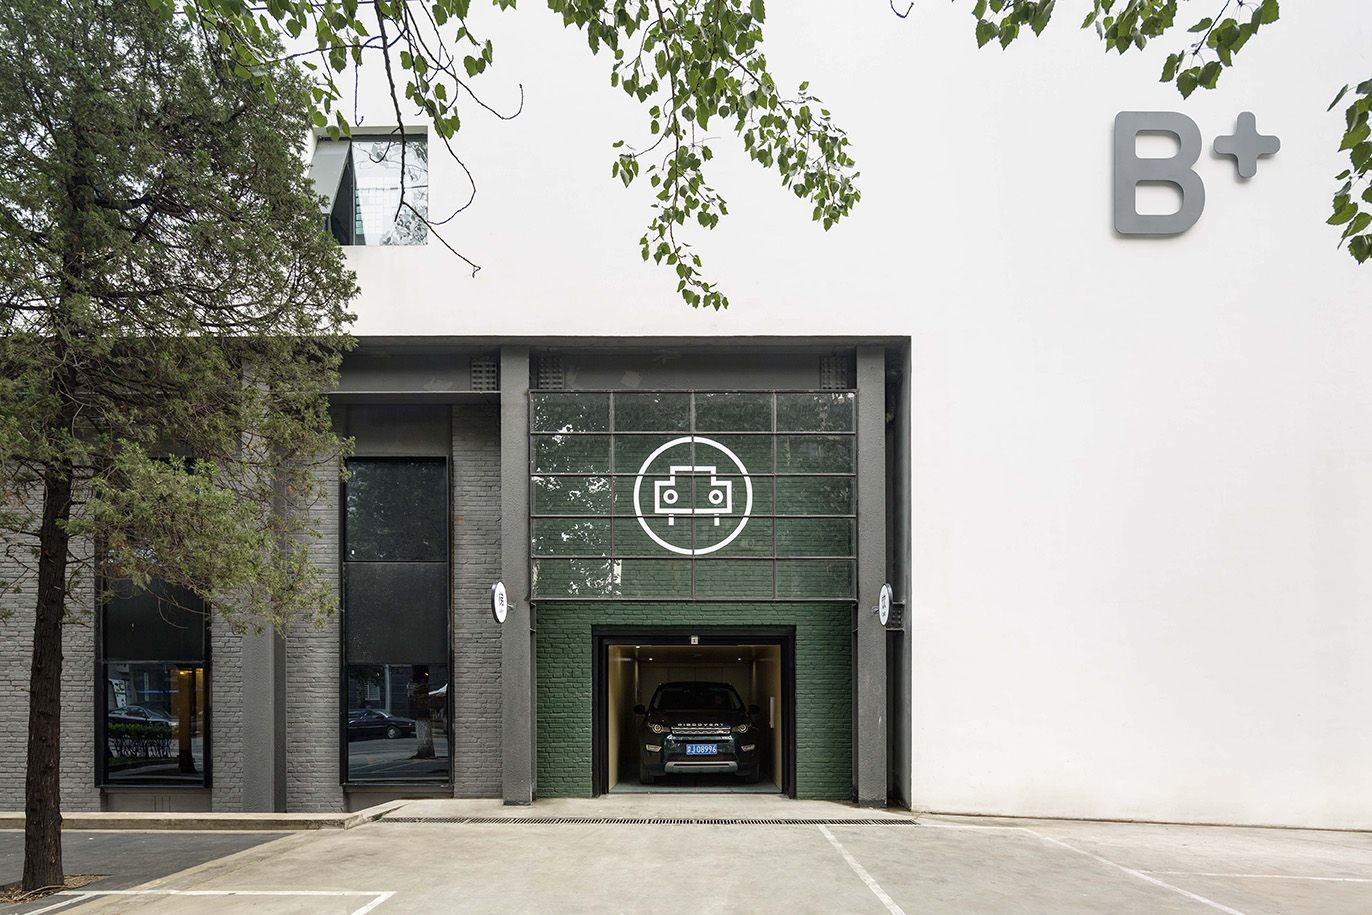 The Garage -- Beijing B+ Automobile Service Center